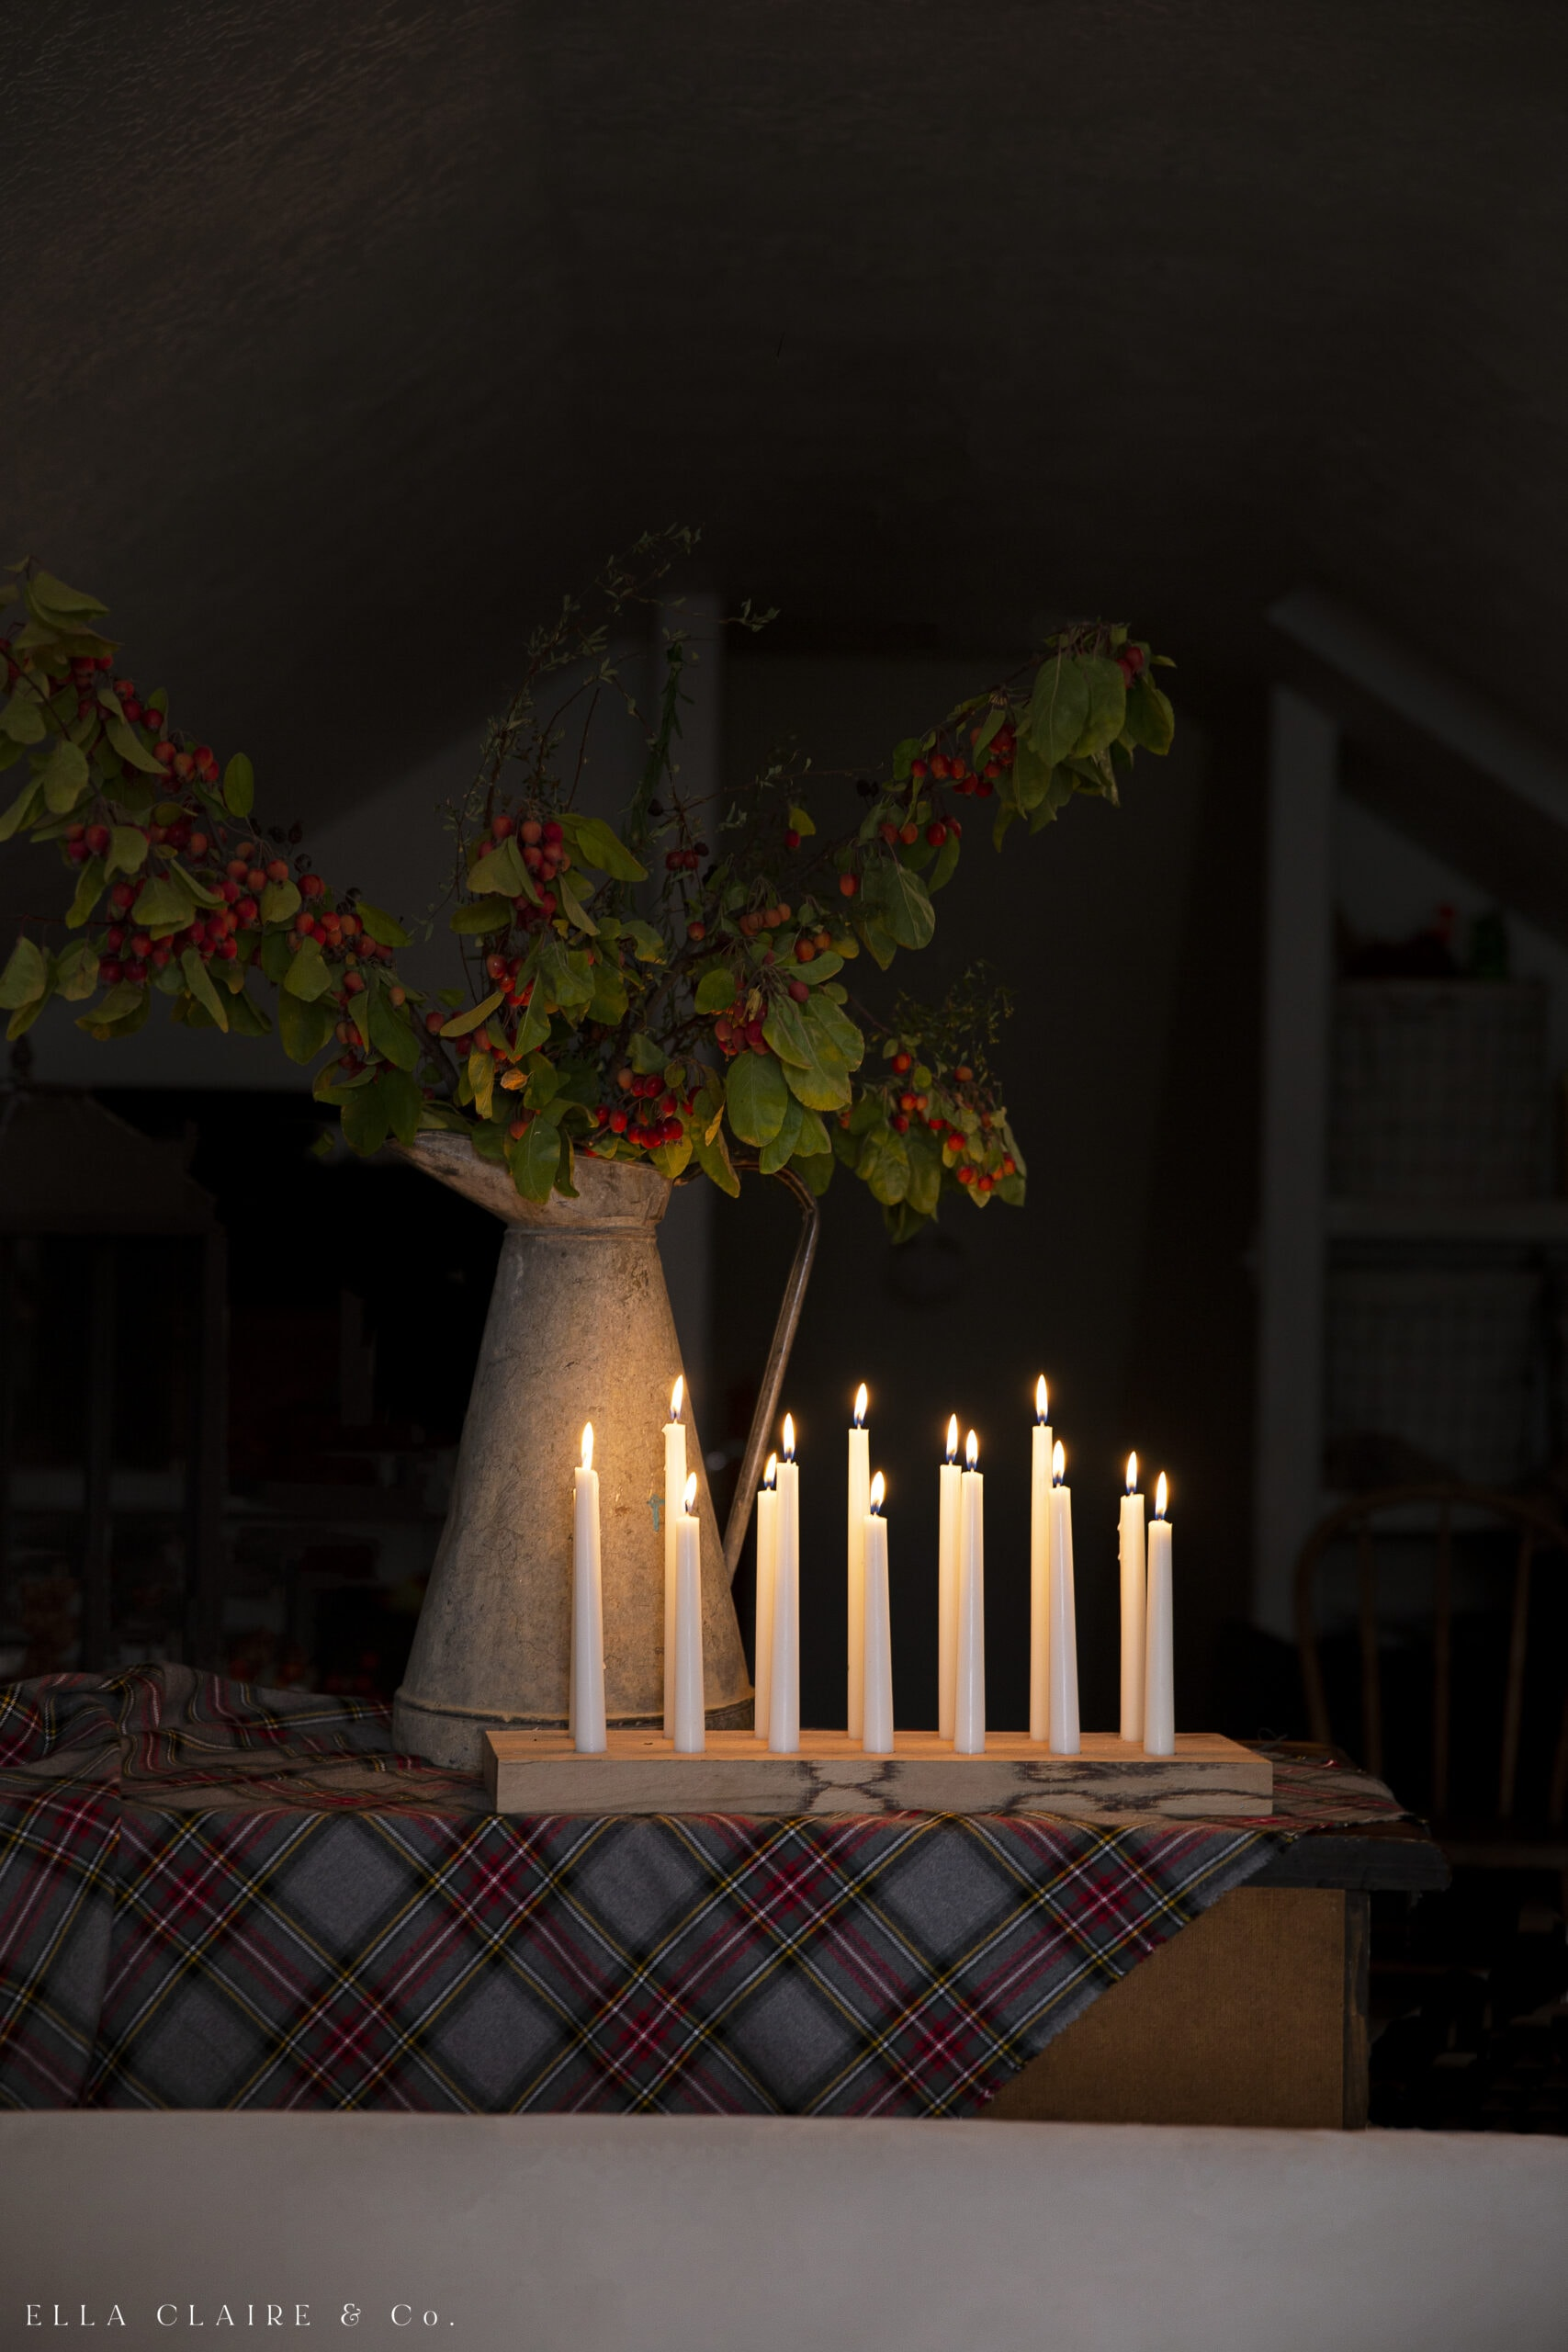 lit candles in holder on table